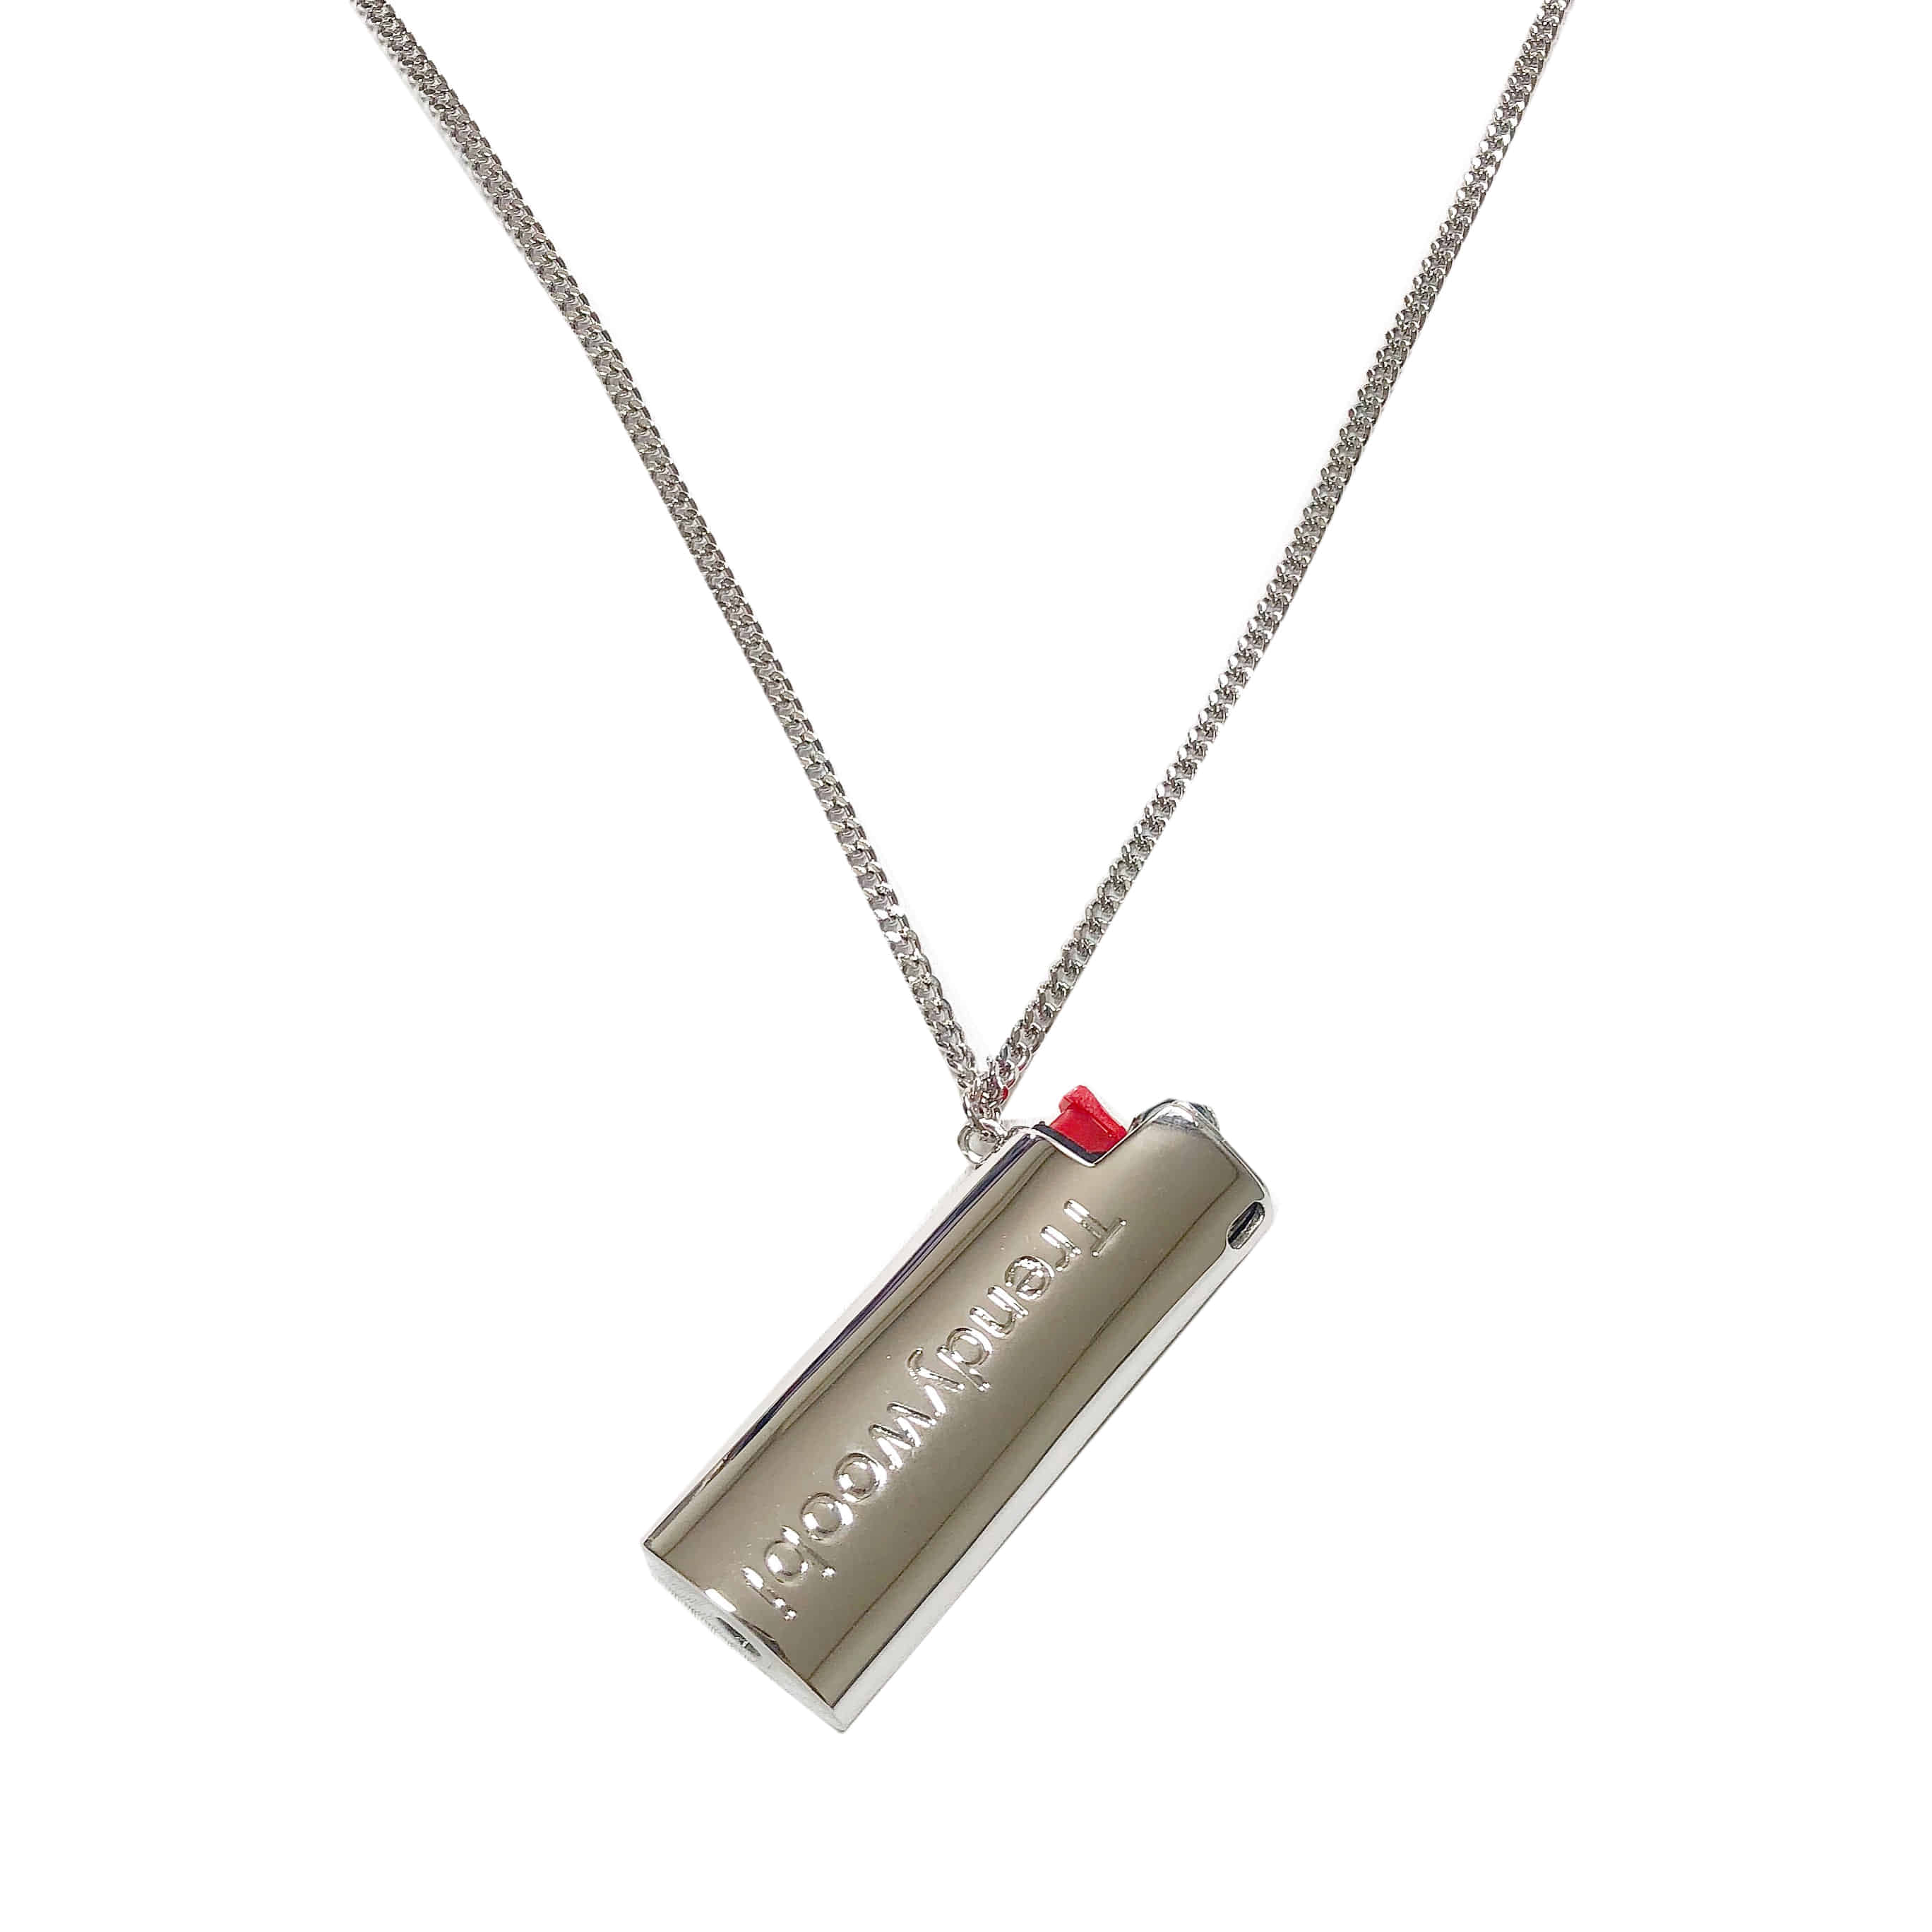 lighter case necklace